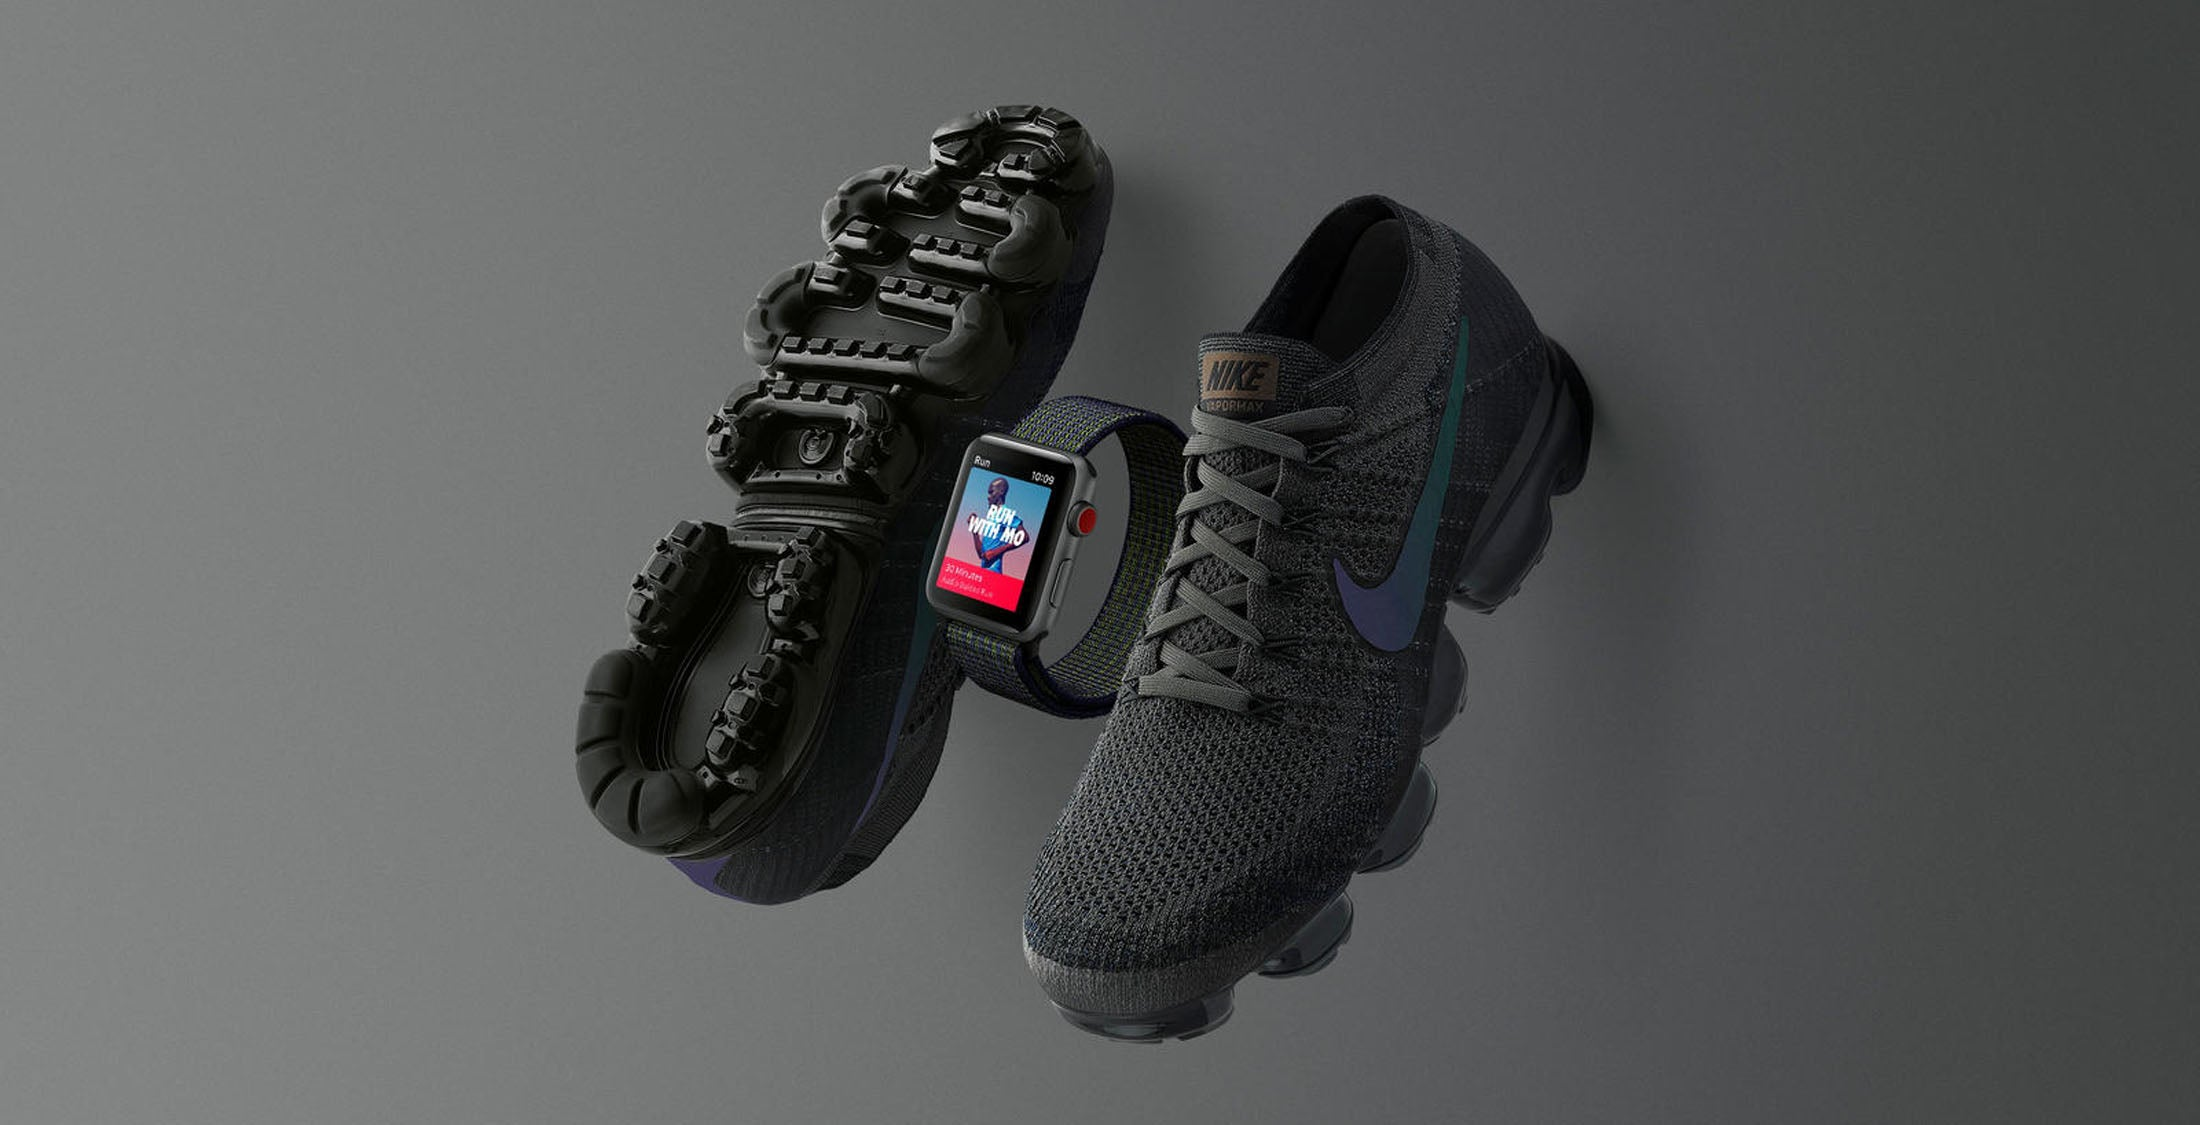 4a50c6975847 The tech and fitness giants have revealed the new Apple Watch Series 3  Cellular + GPS edition in a new Midnight Fog design.